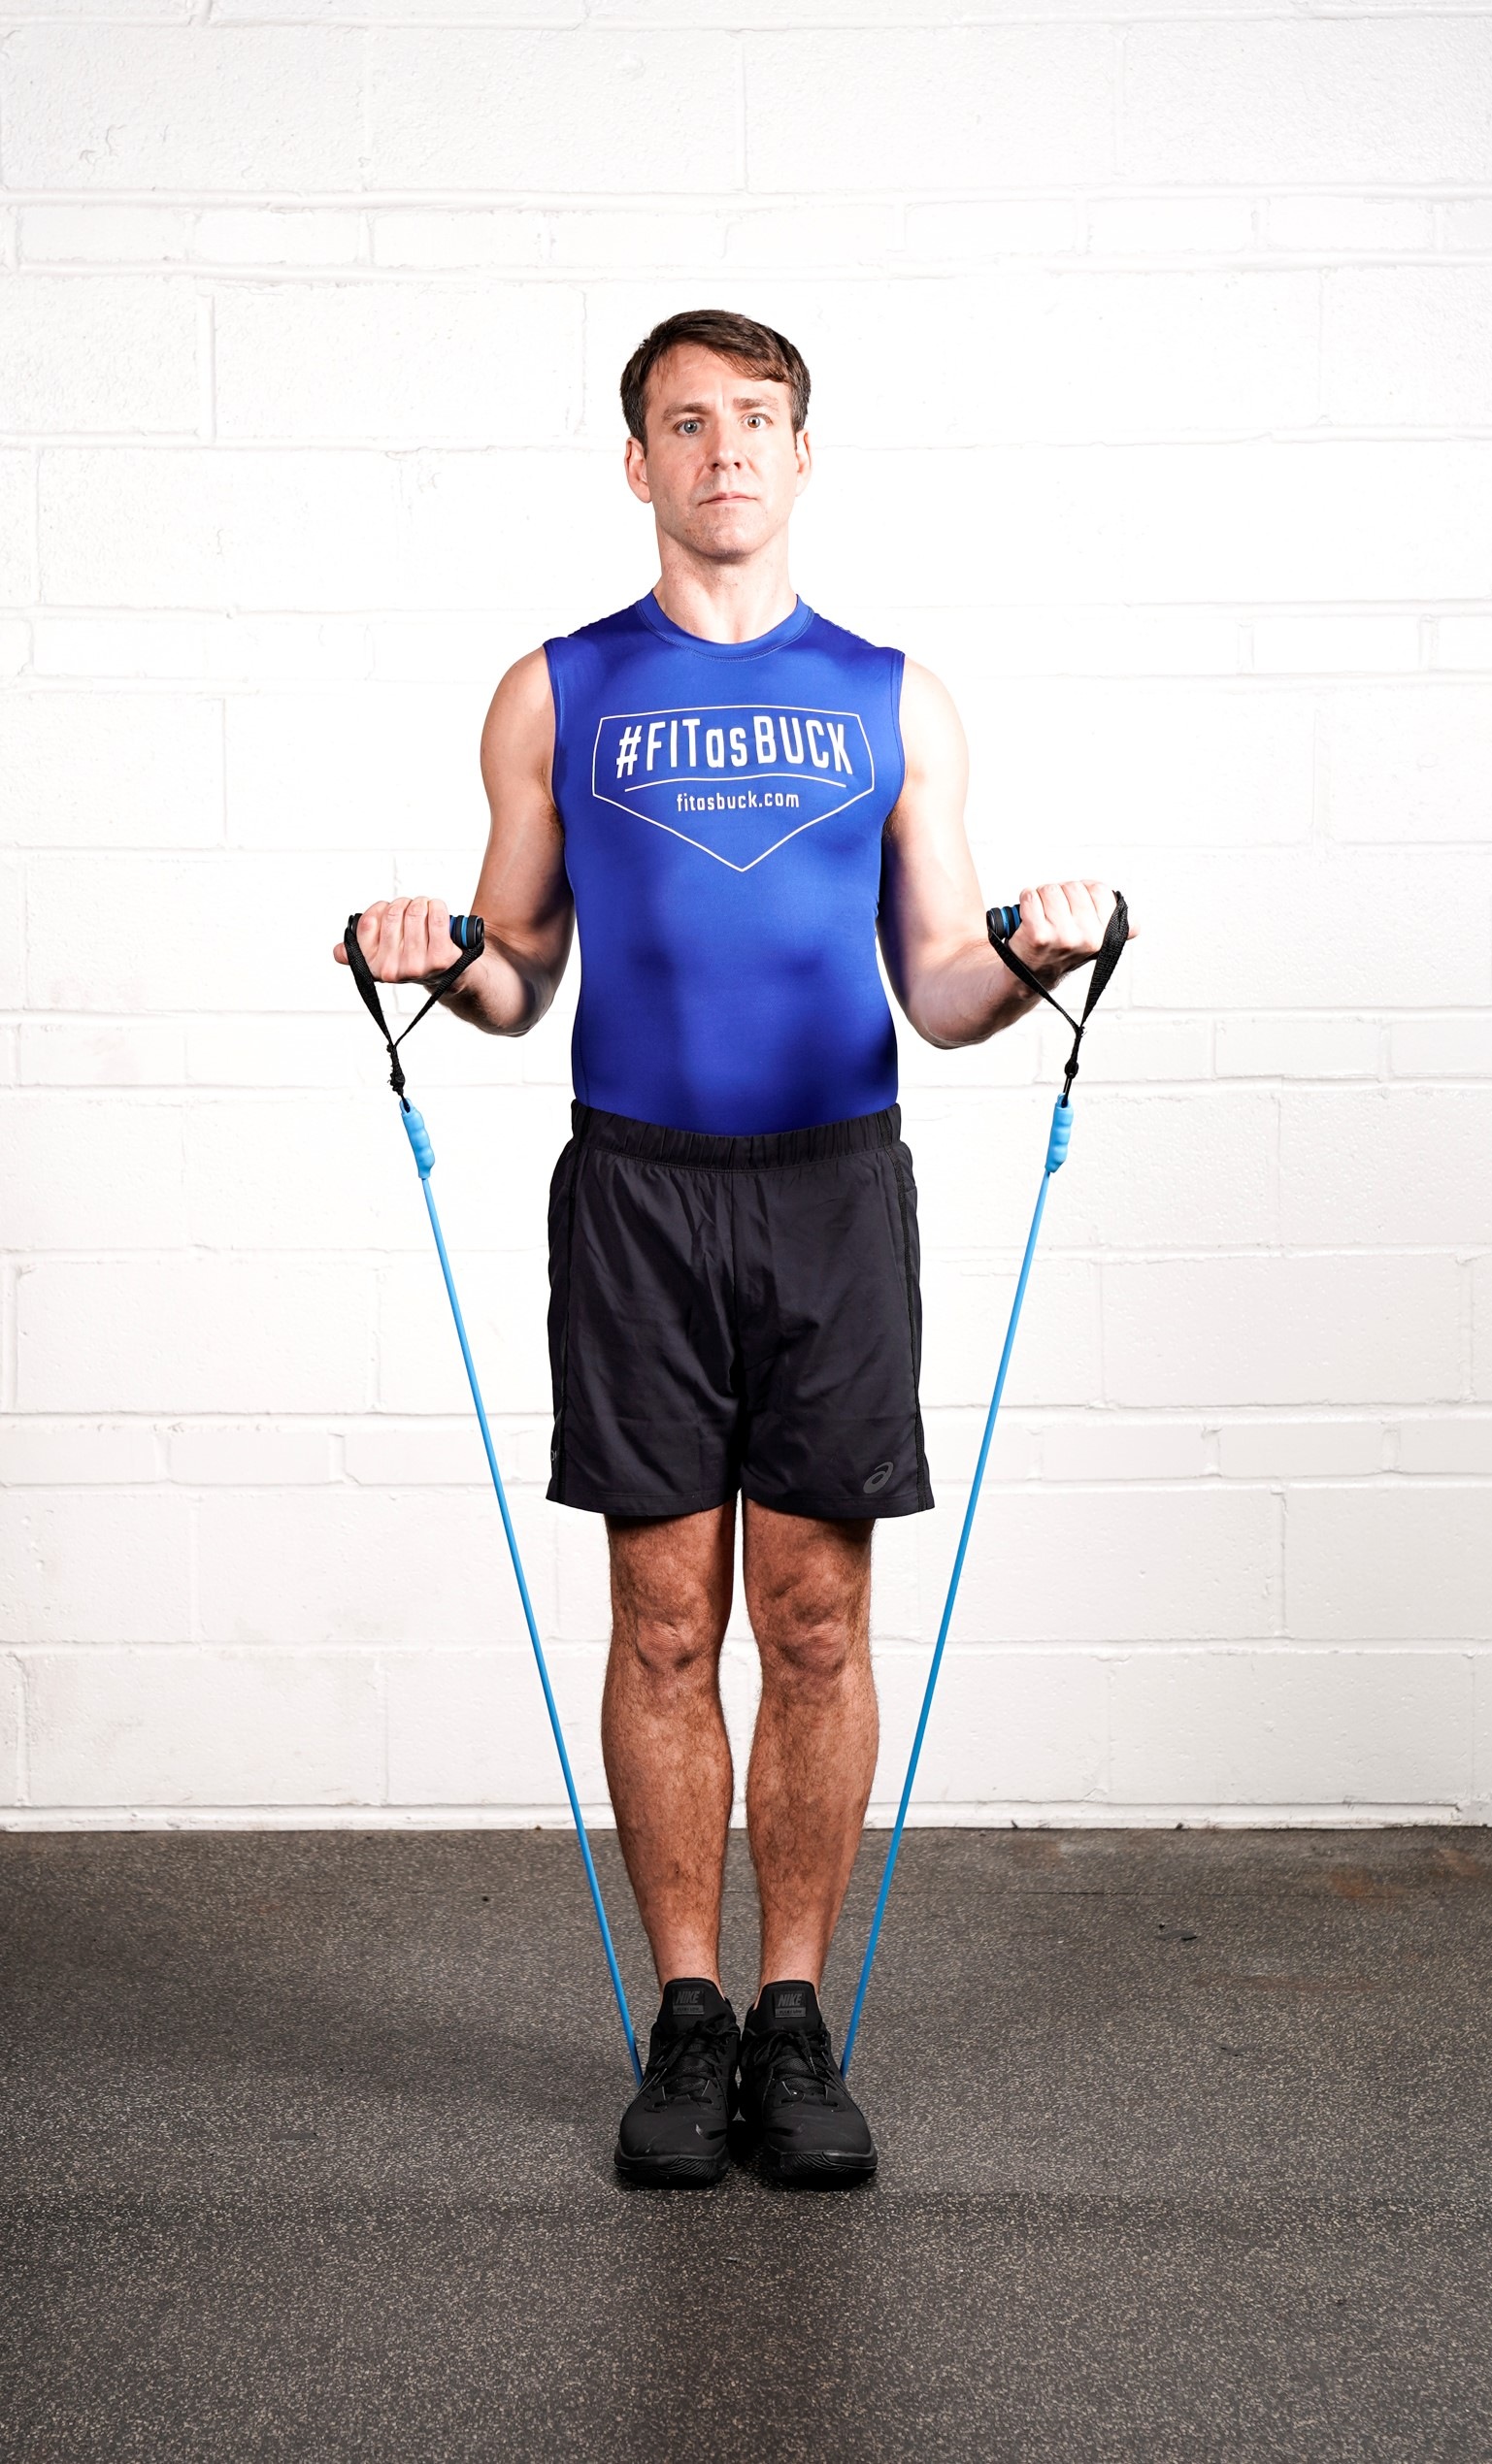 Resistance Band Biceps Curl Hold (Halfway) - - DURATION: 30 seconds- SETS: 1